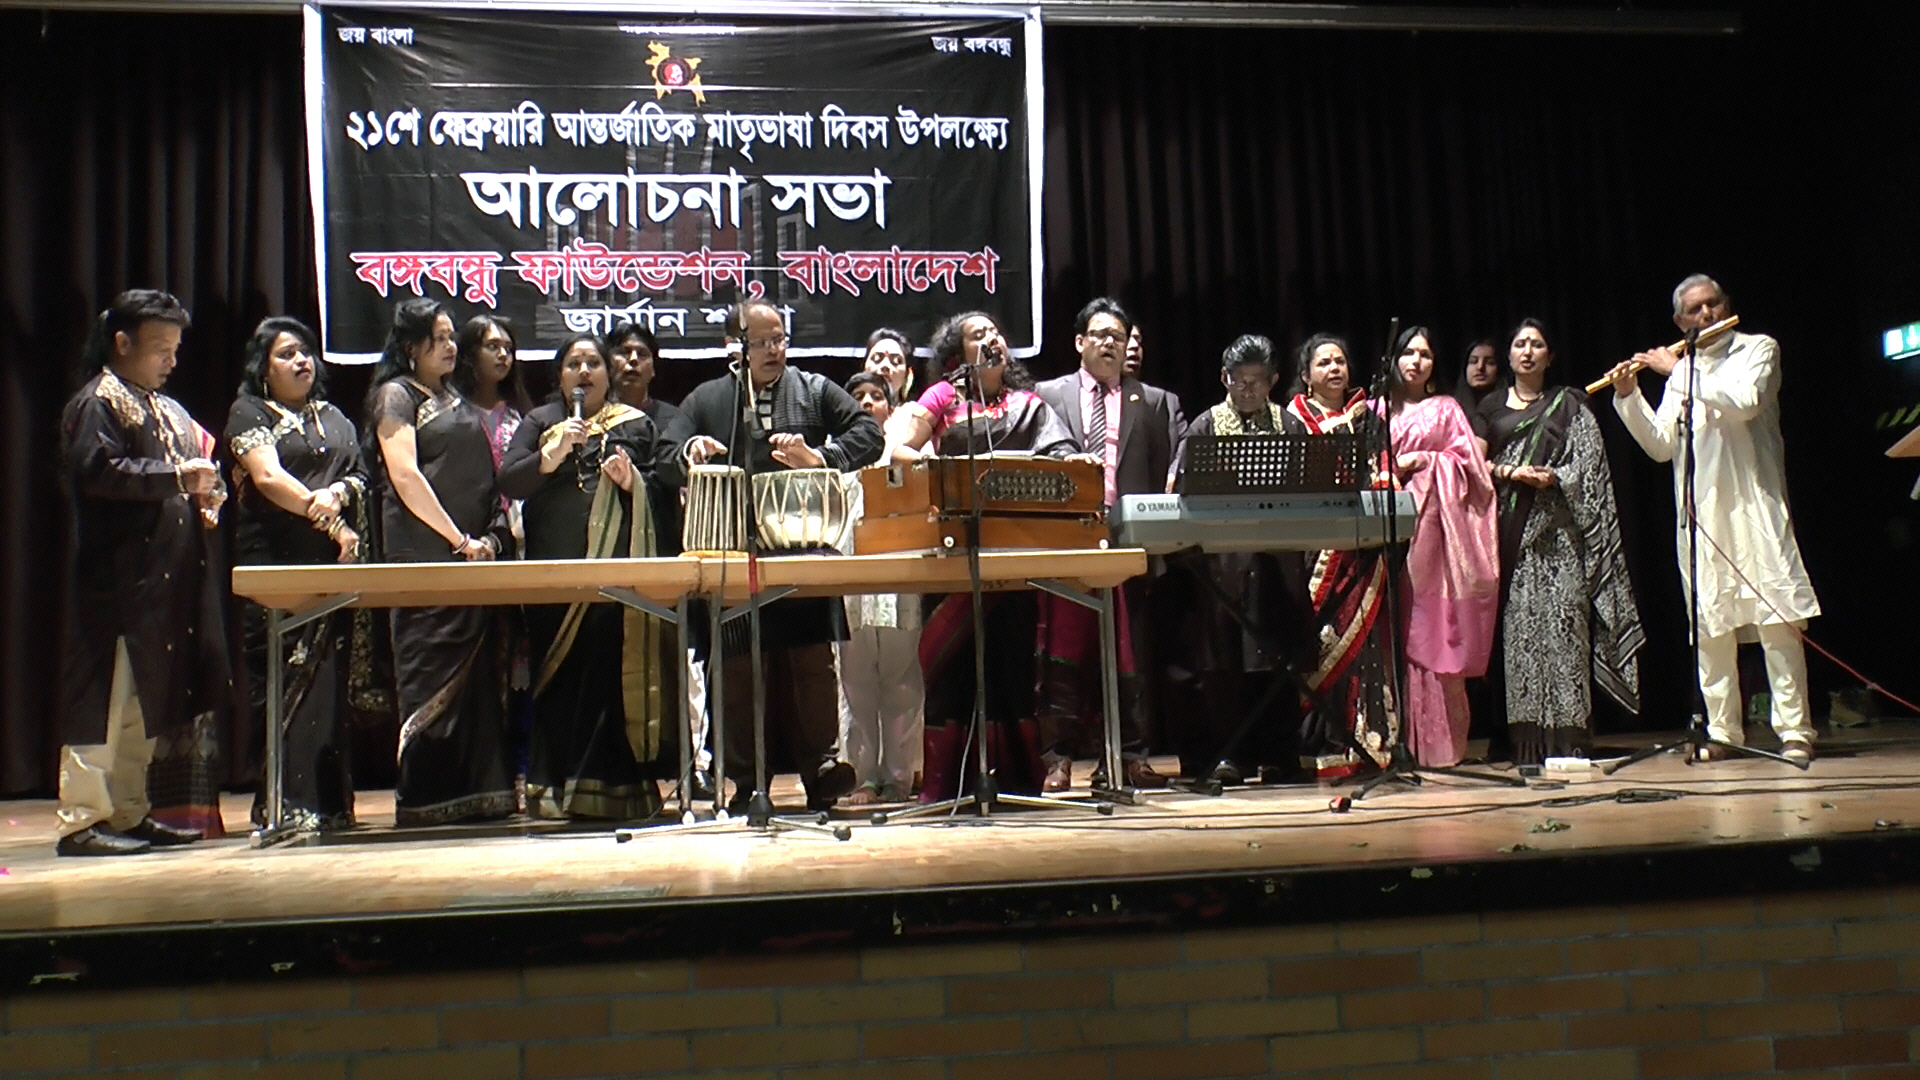 bengali language movement Language movement began in 1948 and reached its climax in the killing of 21 february 1952, and ended in the adoption of bangla as one of the state languages of pakistan the question as to what would be the state language of pakistan was raised immediately after its creation.